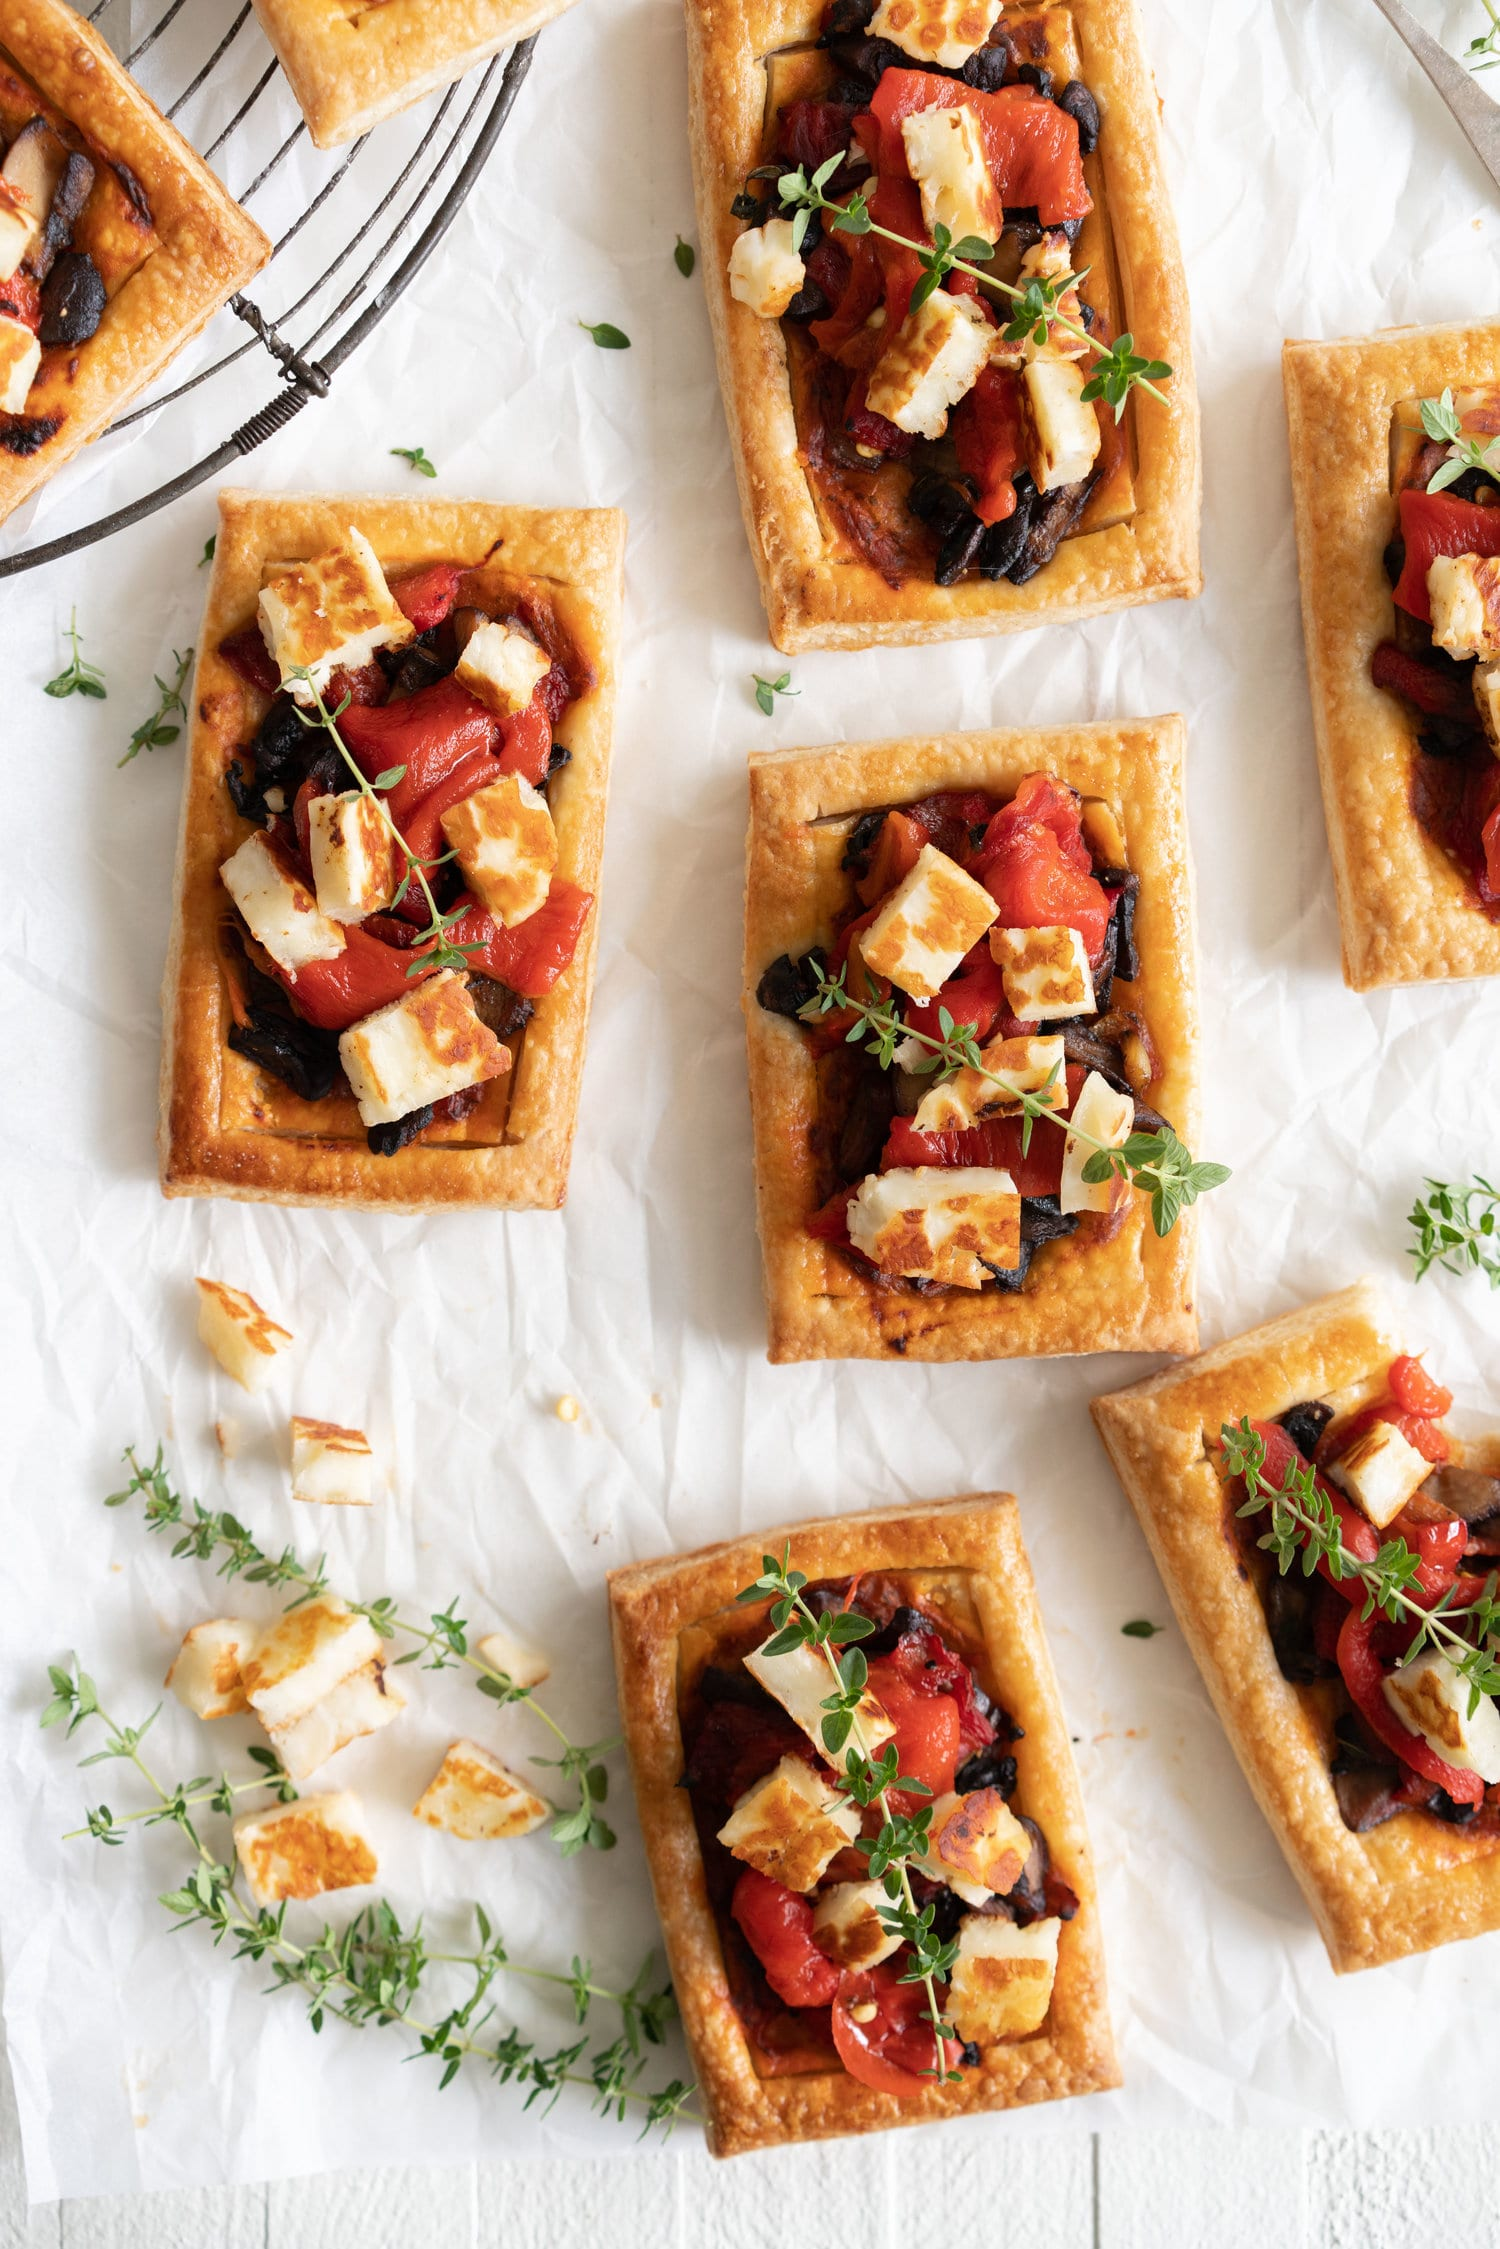 Chili Pesto, Mushroom, Roasted Red Pepper and Halloumi Tarts | Thanksgiving recipes via entertaining blog @cydconverse